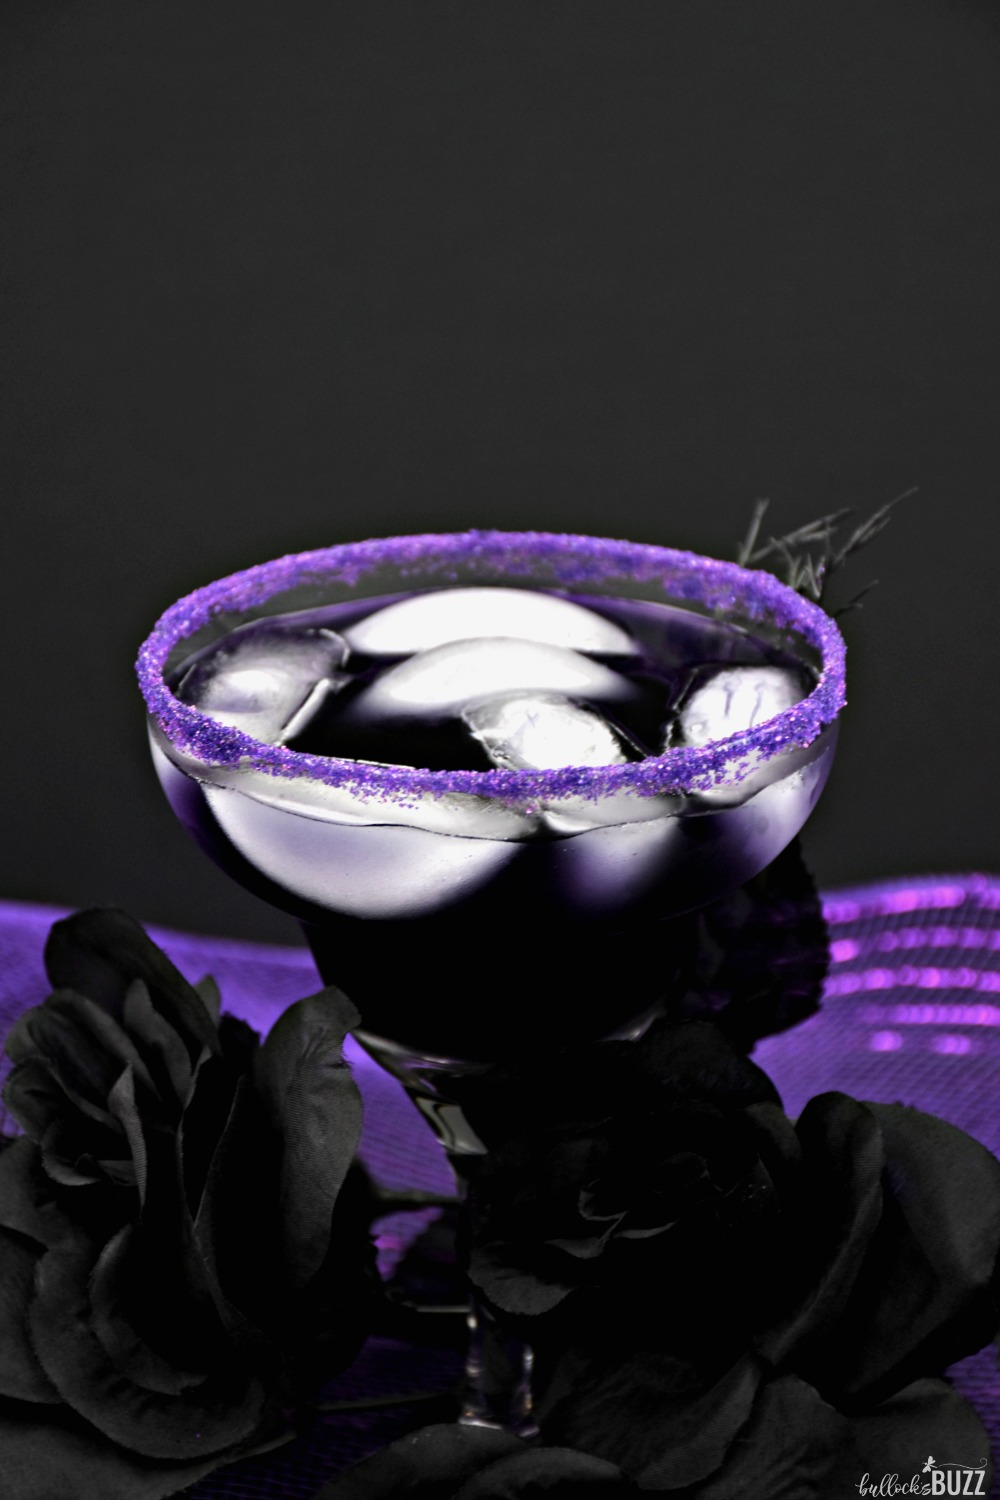 Old Hallows Eve may finally be here, but that doesn't mean the fun is dead and buried! The Magic Potion Purple Halloween Cocktail is a devilishly delicious drink that's so good, it's scary! Get the recipe on Bullock's Buzz blog.